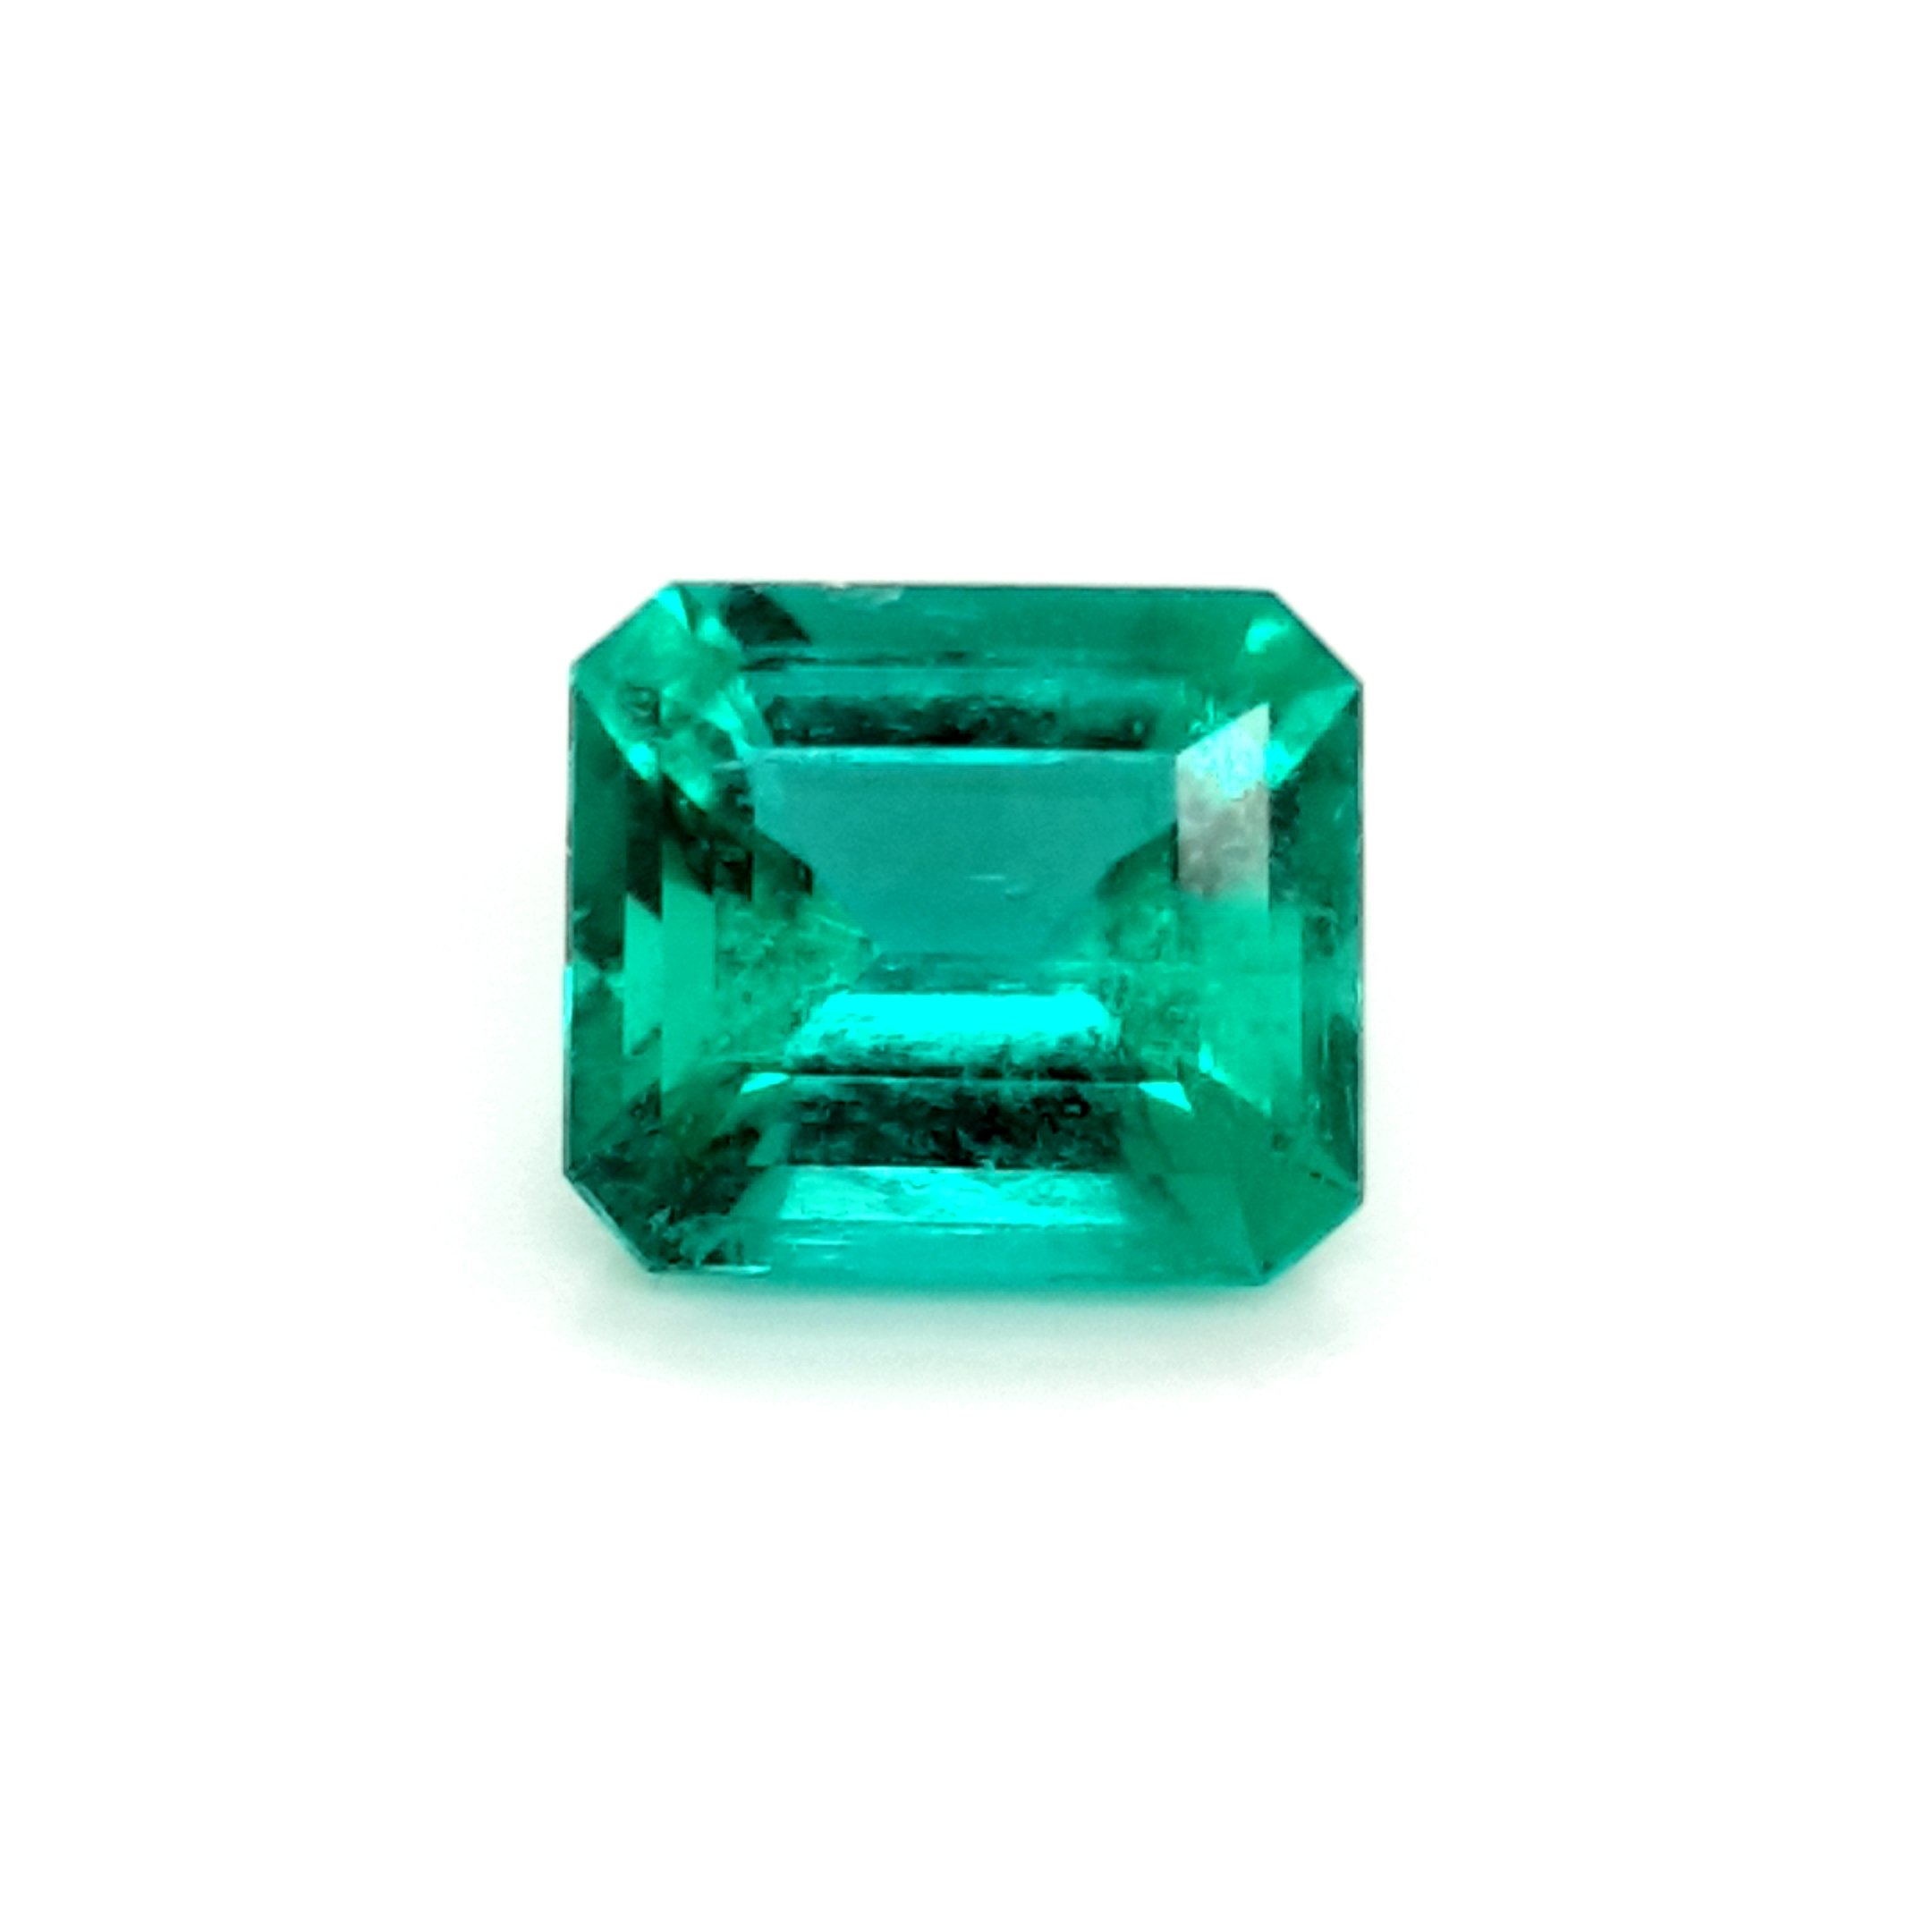 5,27ct. Emerald from Colombia cert. EML12D5 ClaudiaHamann__2021-03-26-12-23-59